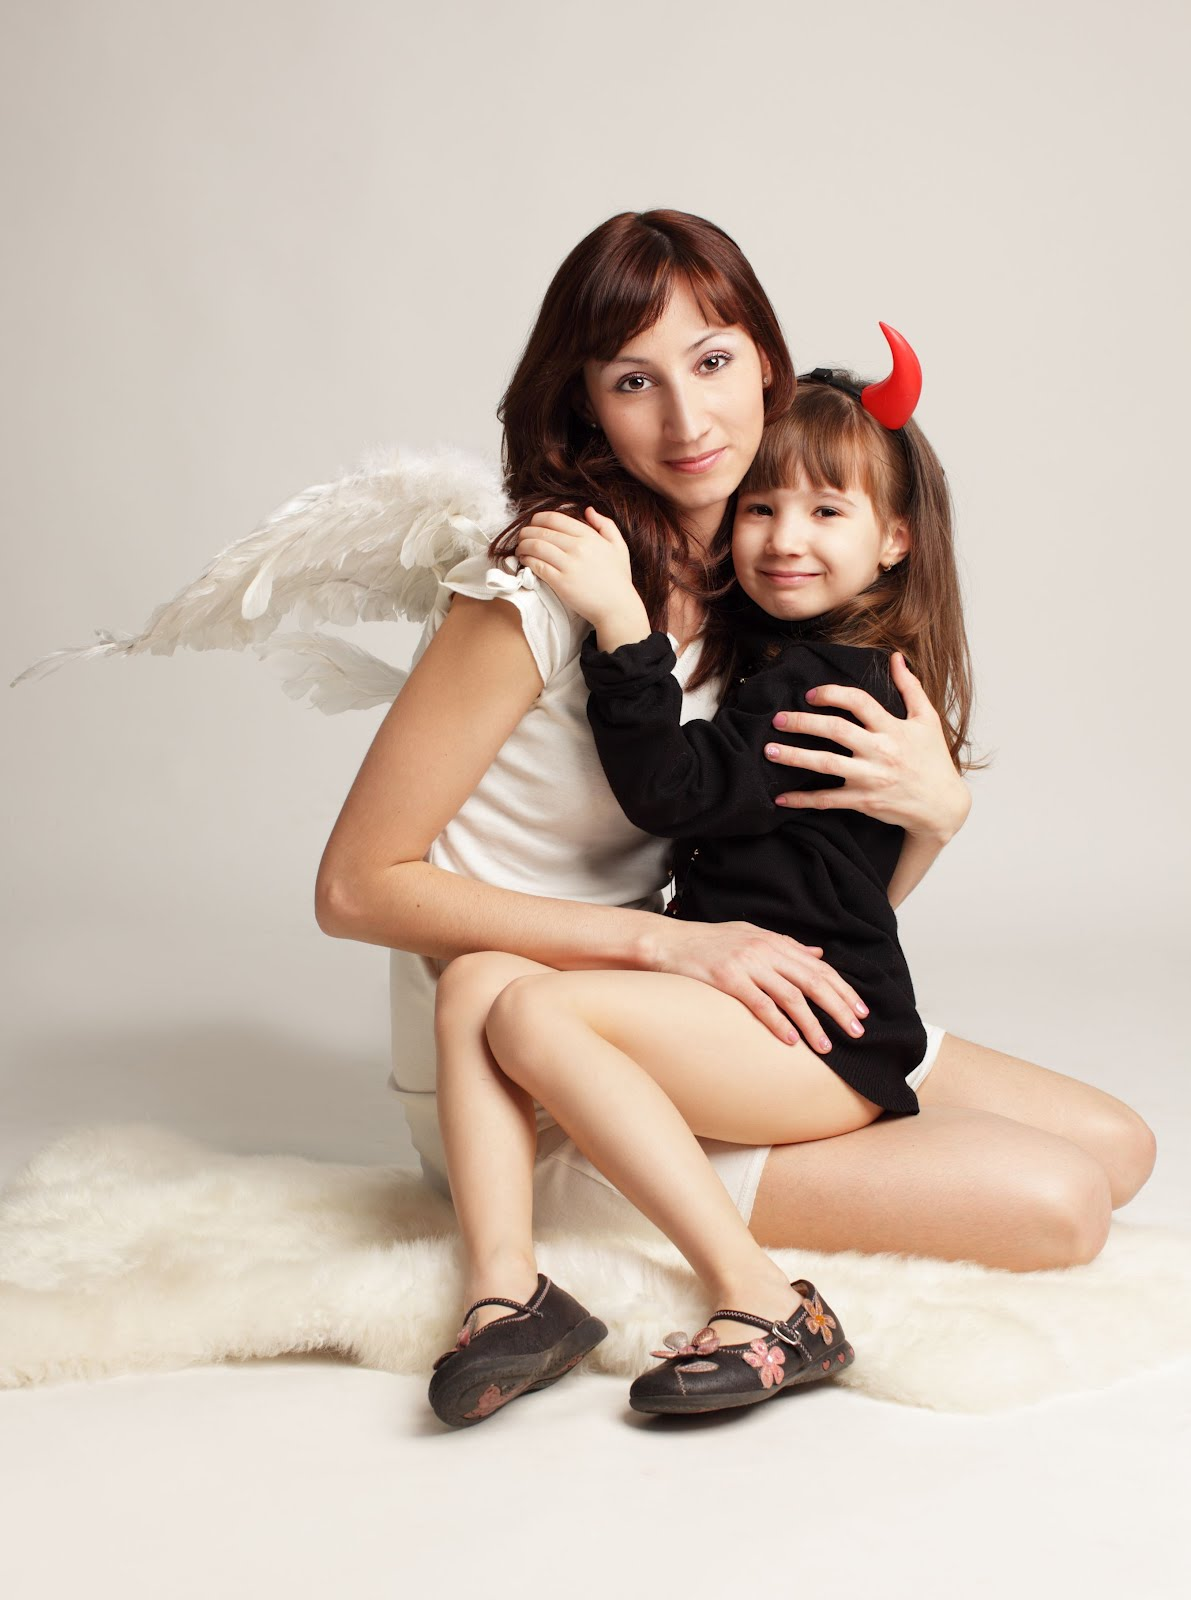 Angel y Demonio - Mamá e Hija - Mother and little girl - Angel and